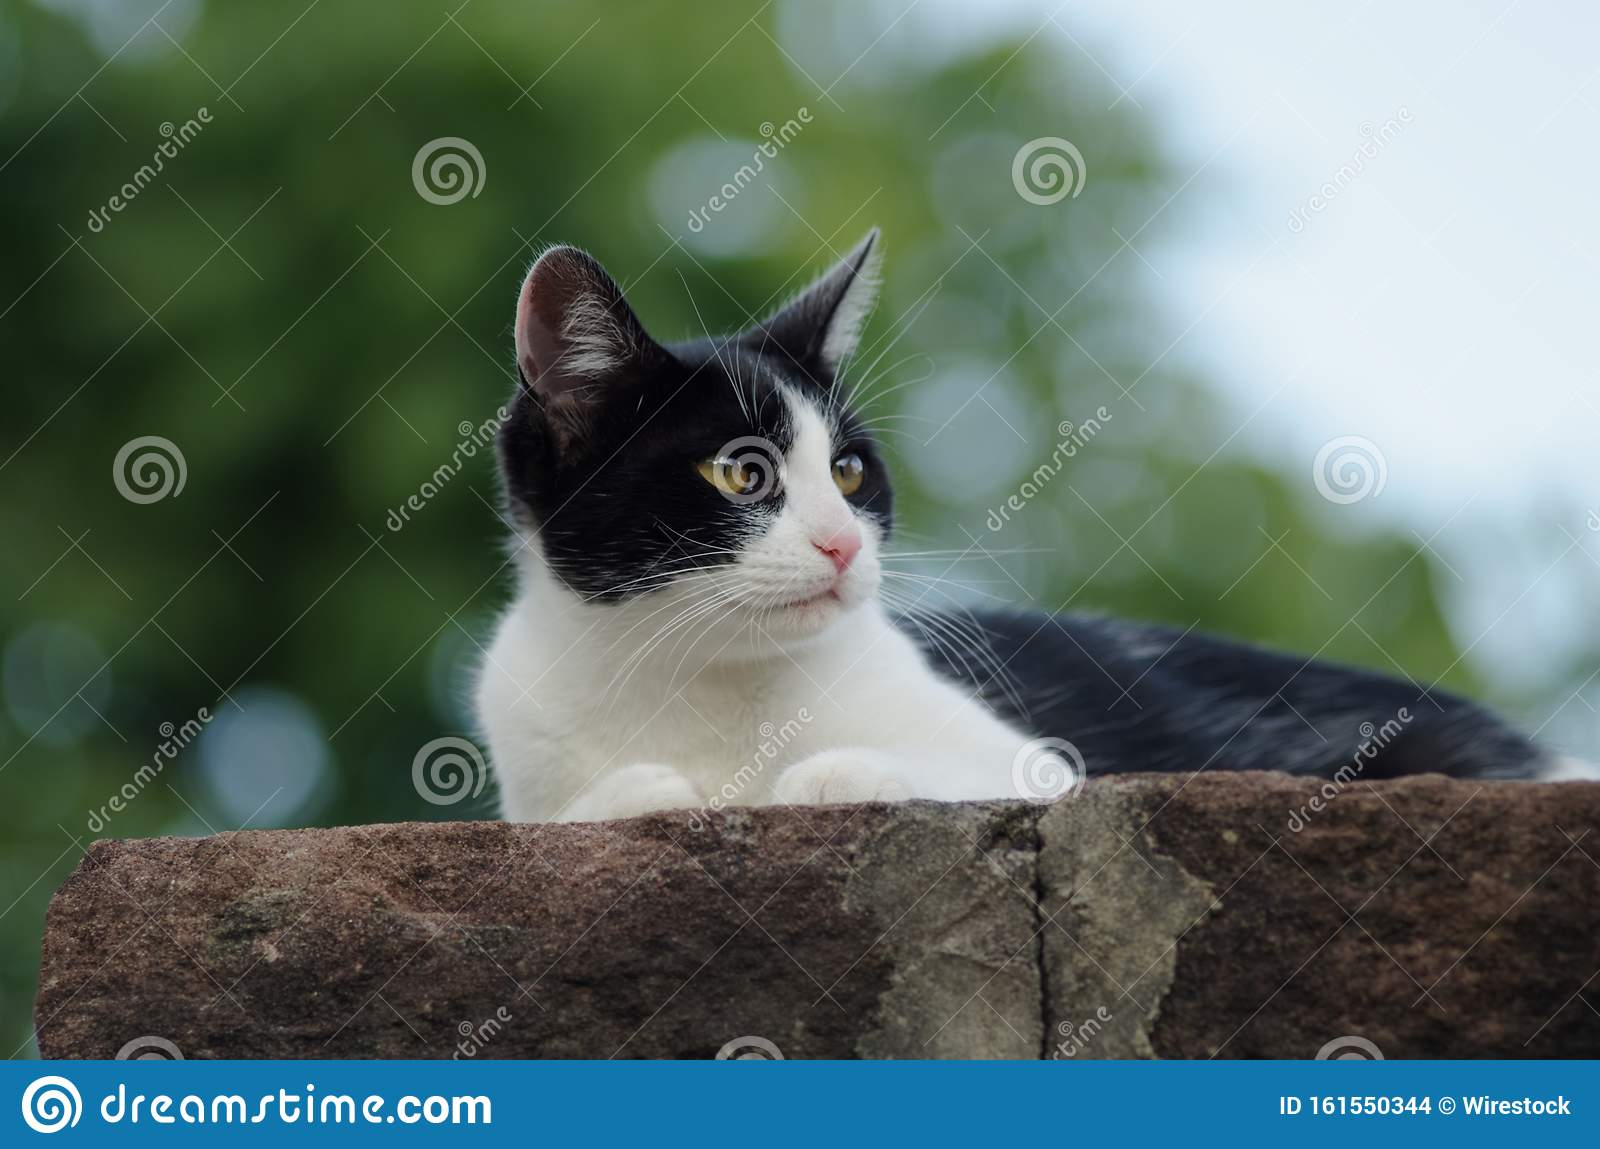 Closeup Shot Of A Cute Black And White Tuxedo Cat Lying On A Stone Perfect For A Cute Wallpaper Stock Photo Image Of Nose Baby 161550344